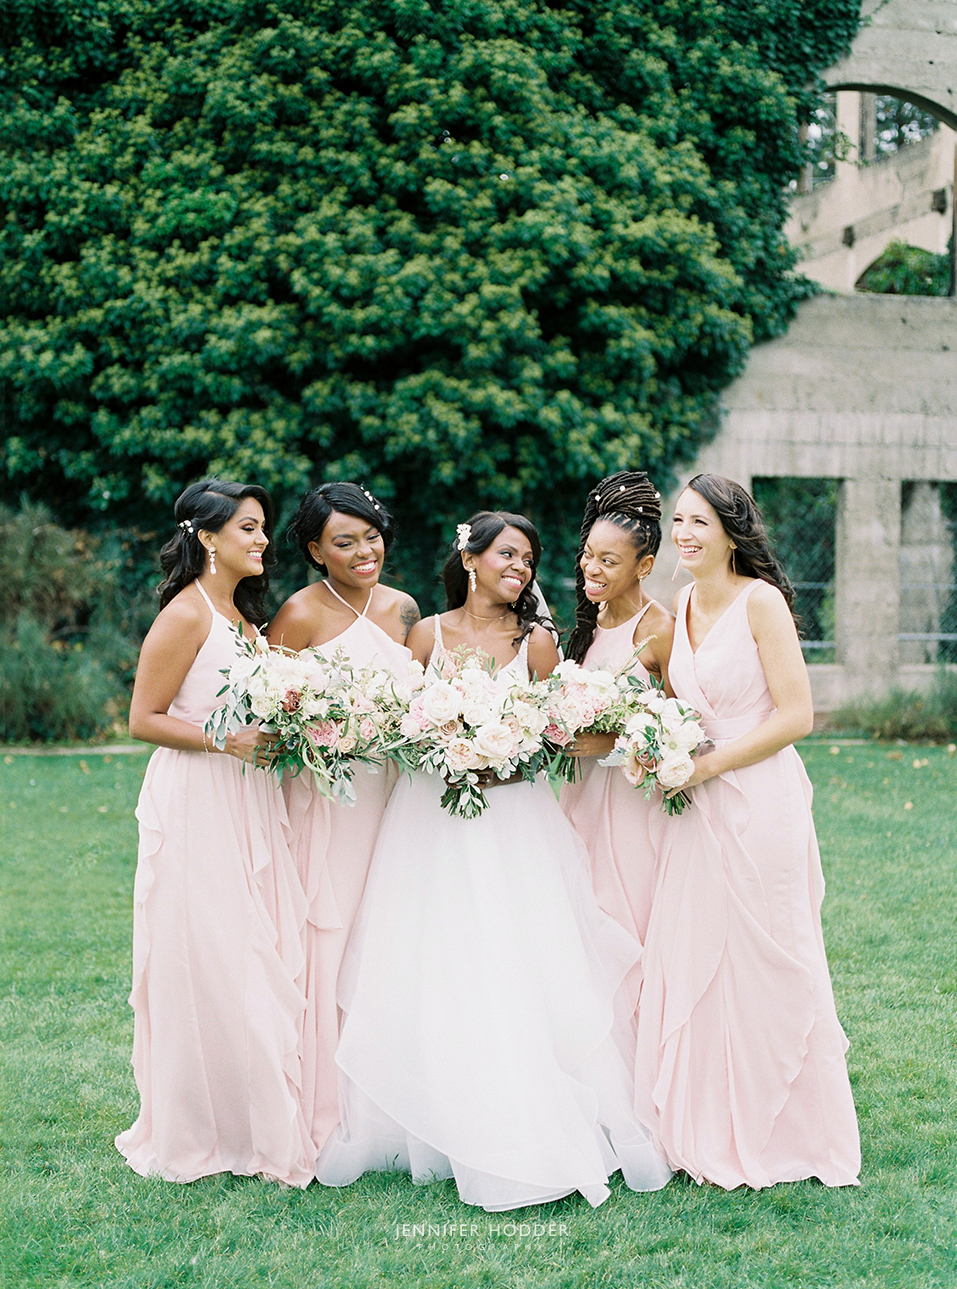 Mix and match pink bridesmaids dresses